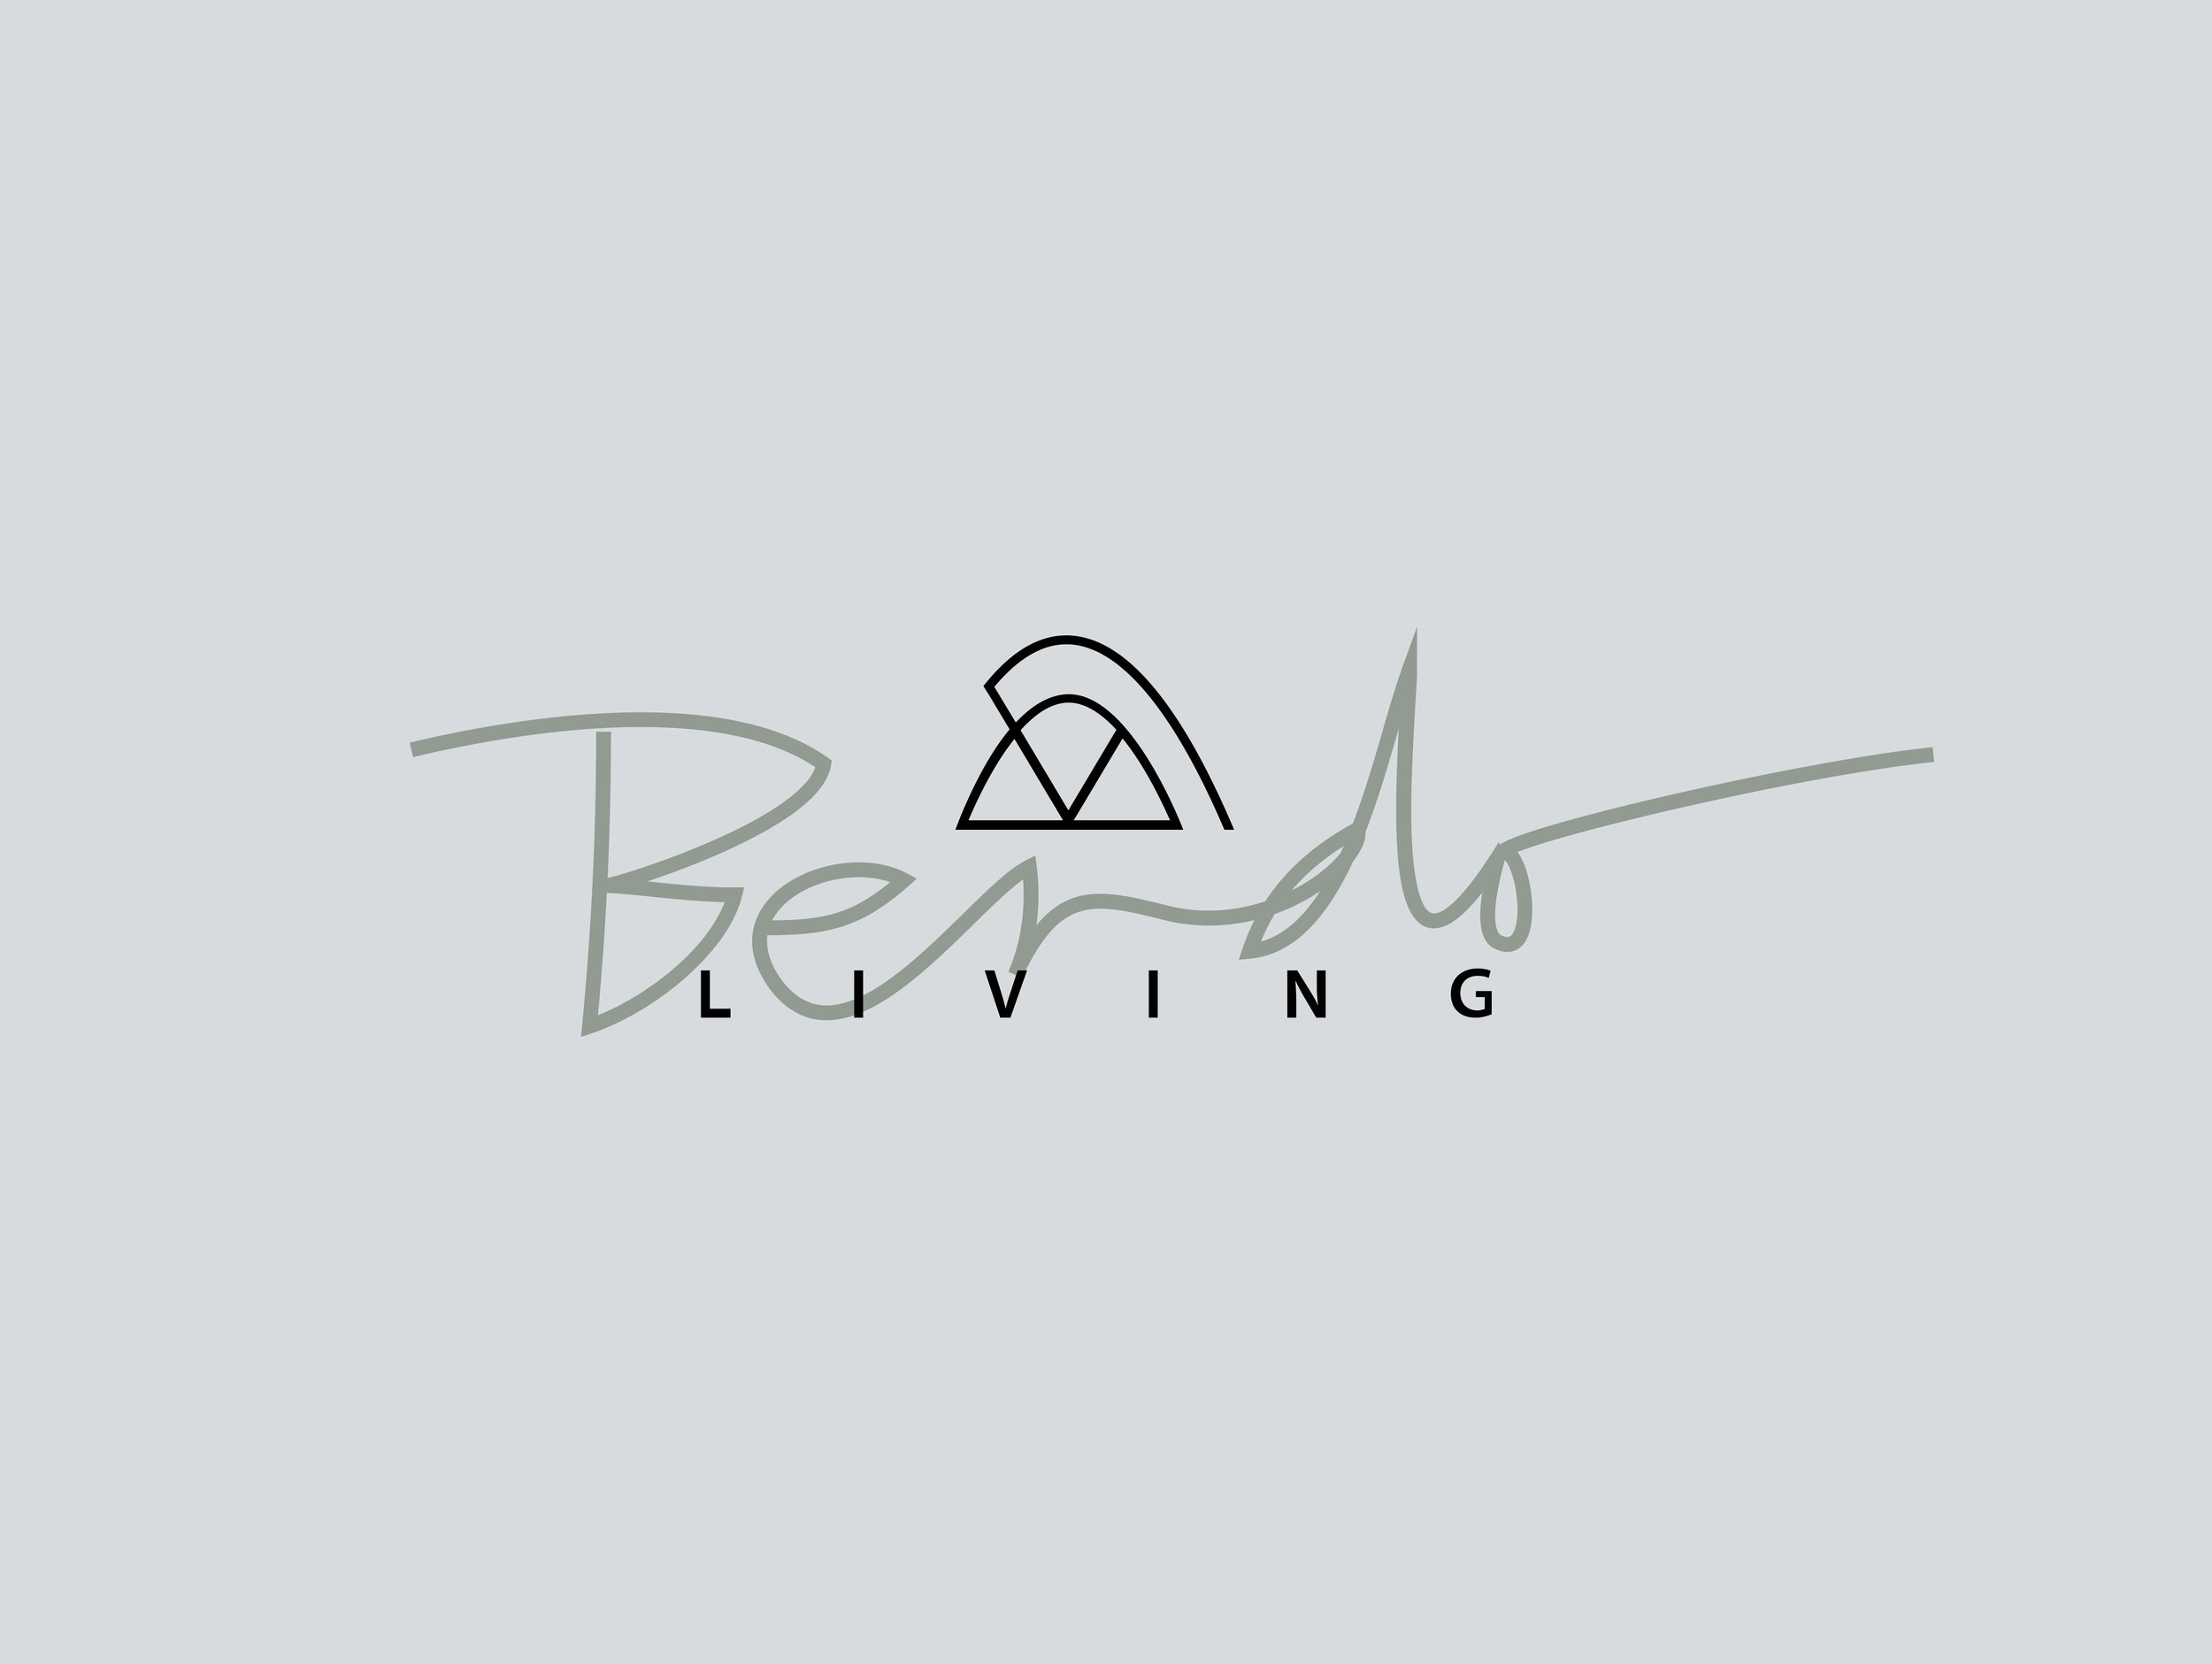 BendoLiving_logo.jpg